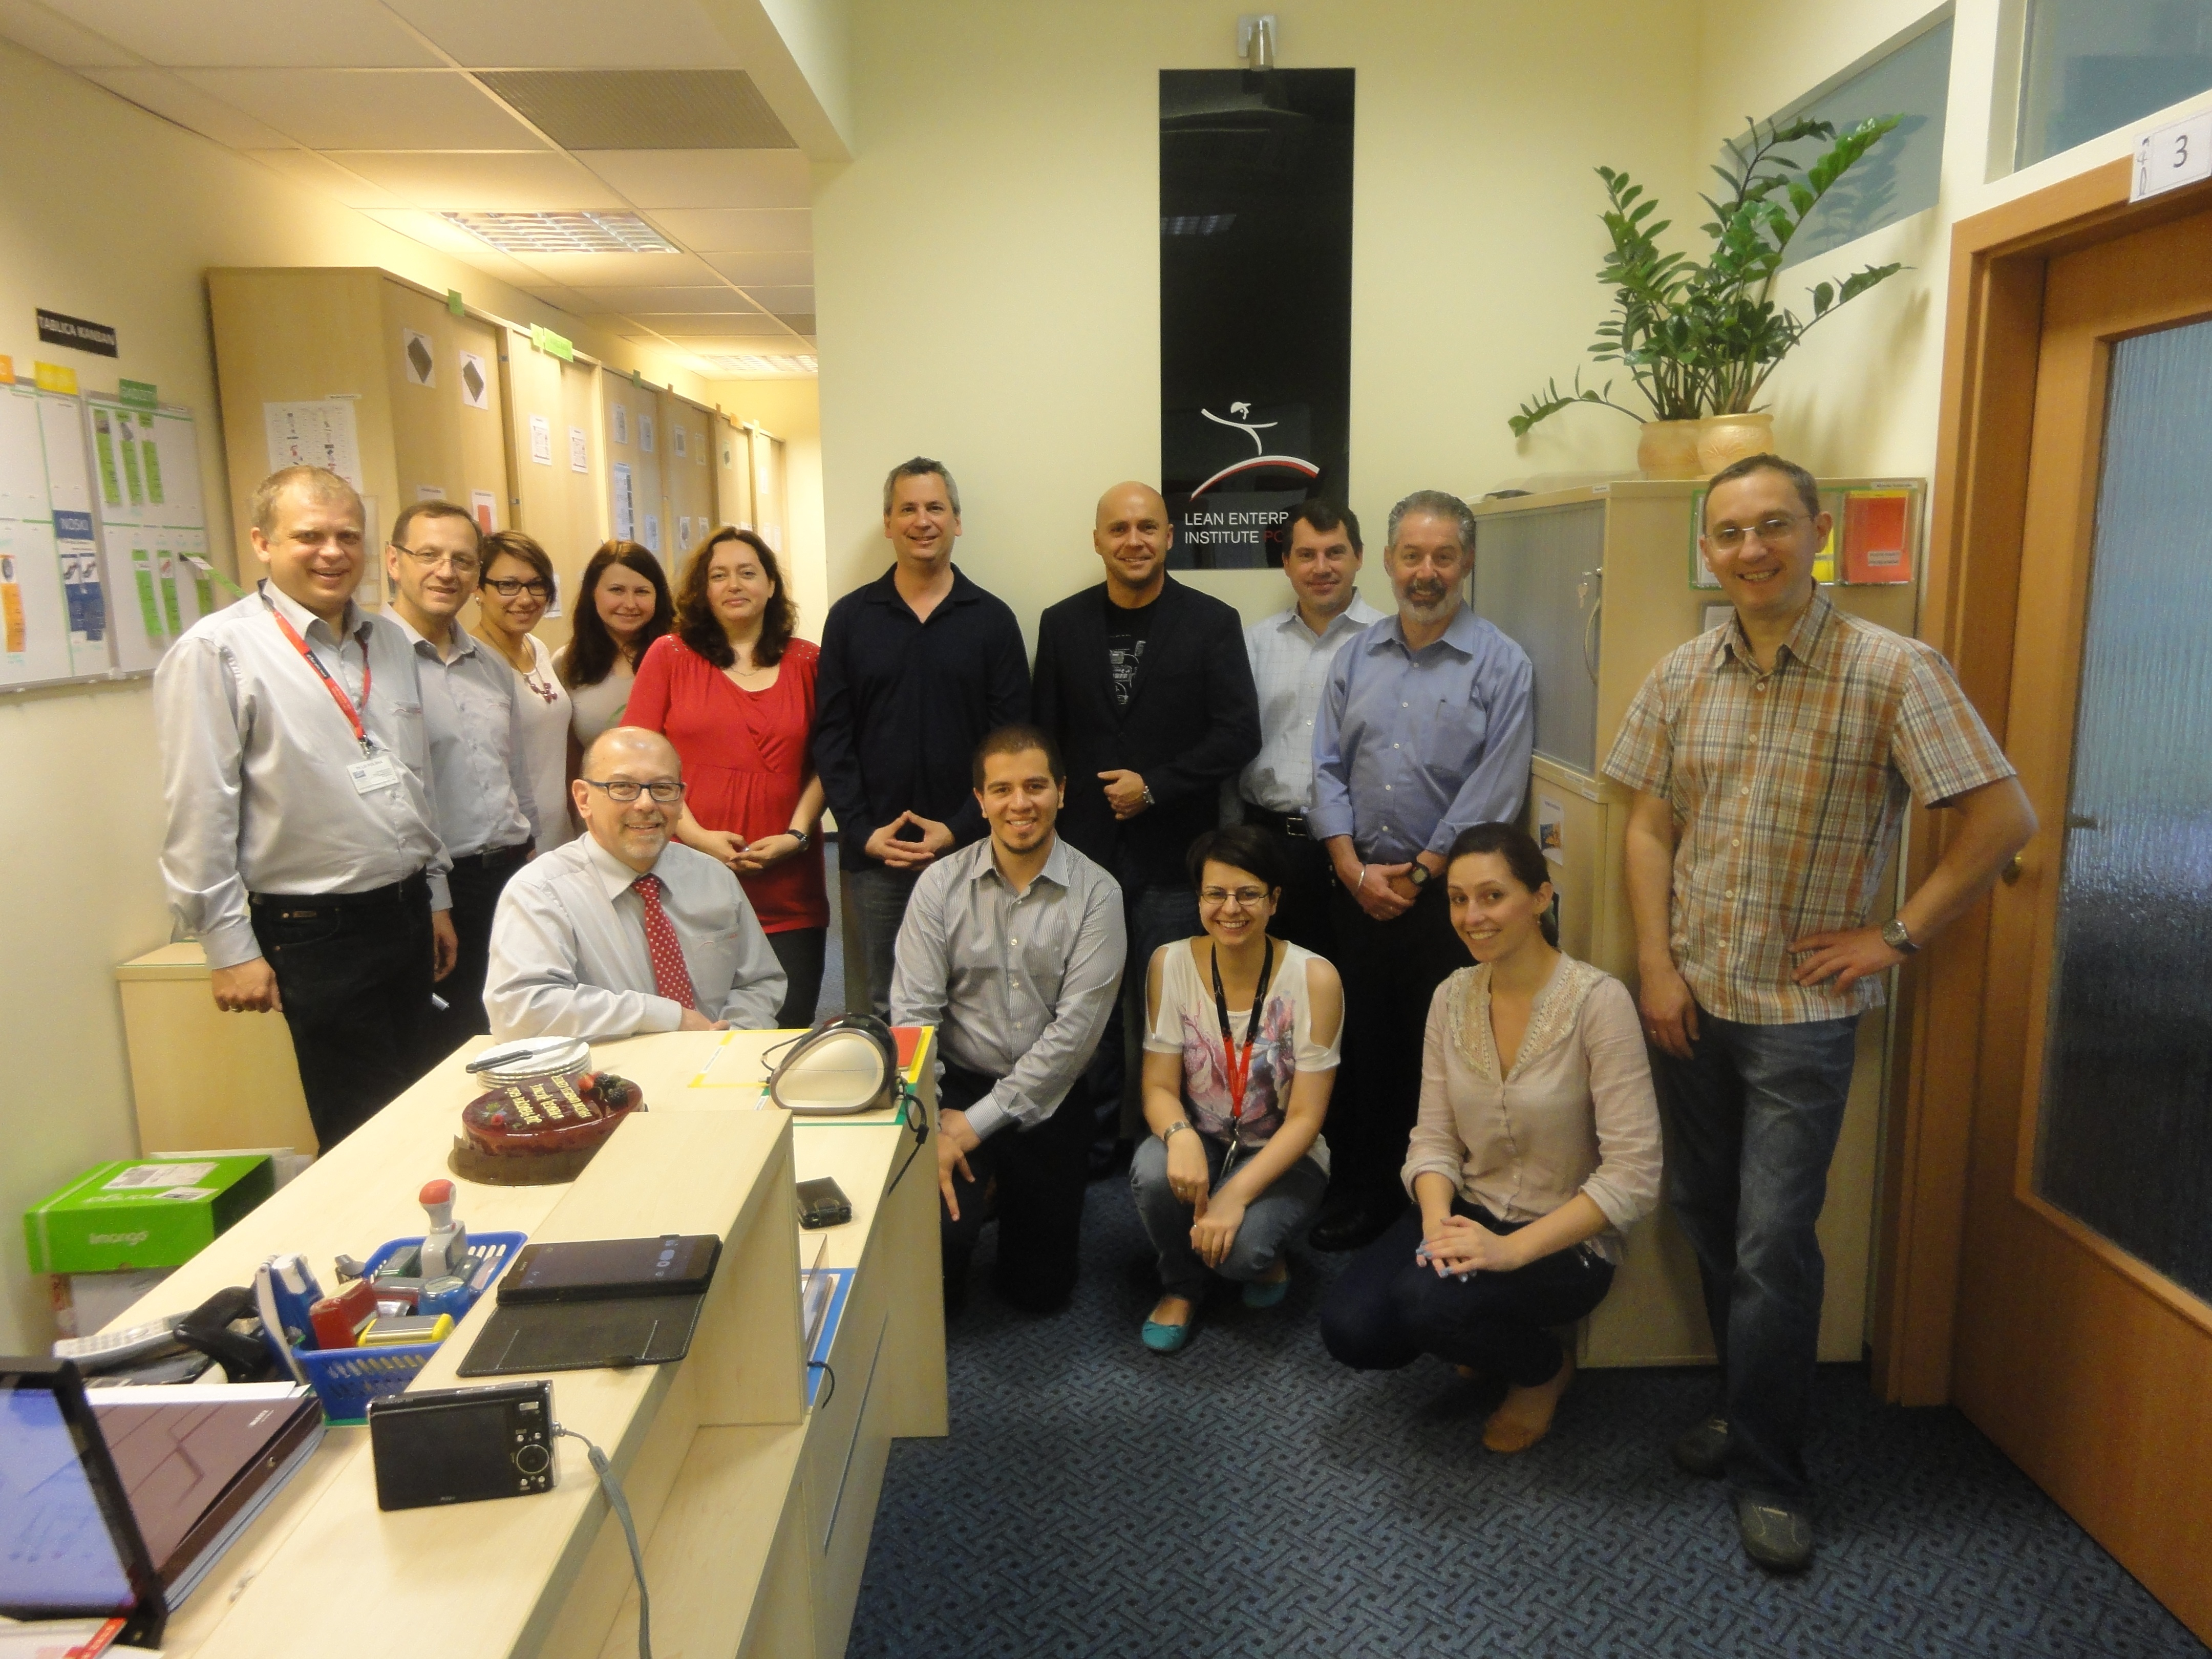 With the LEI Polska team at their office in Wroclaw.  Executive Director Tomasz Koch is kneeling at lower left.